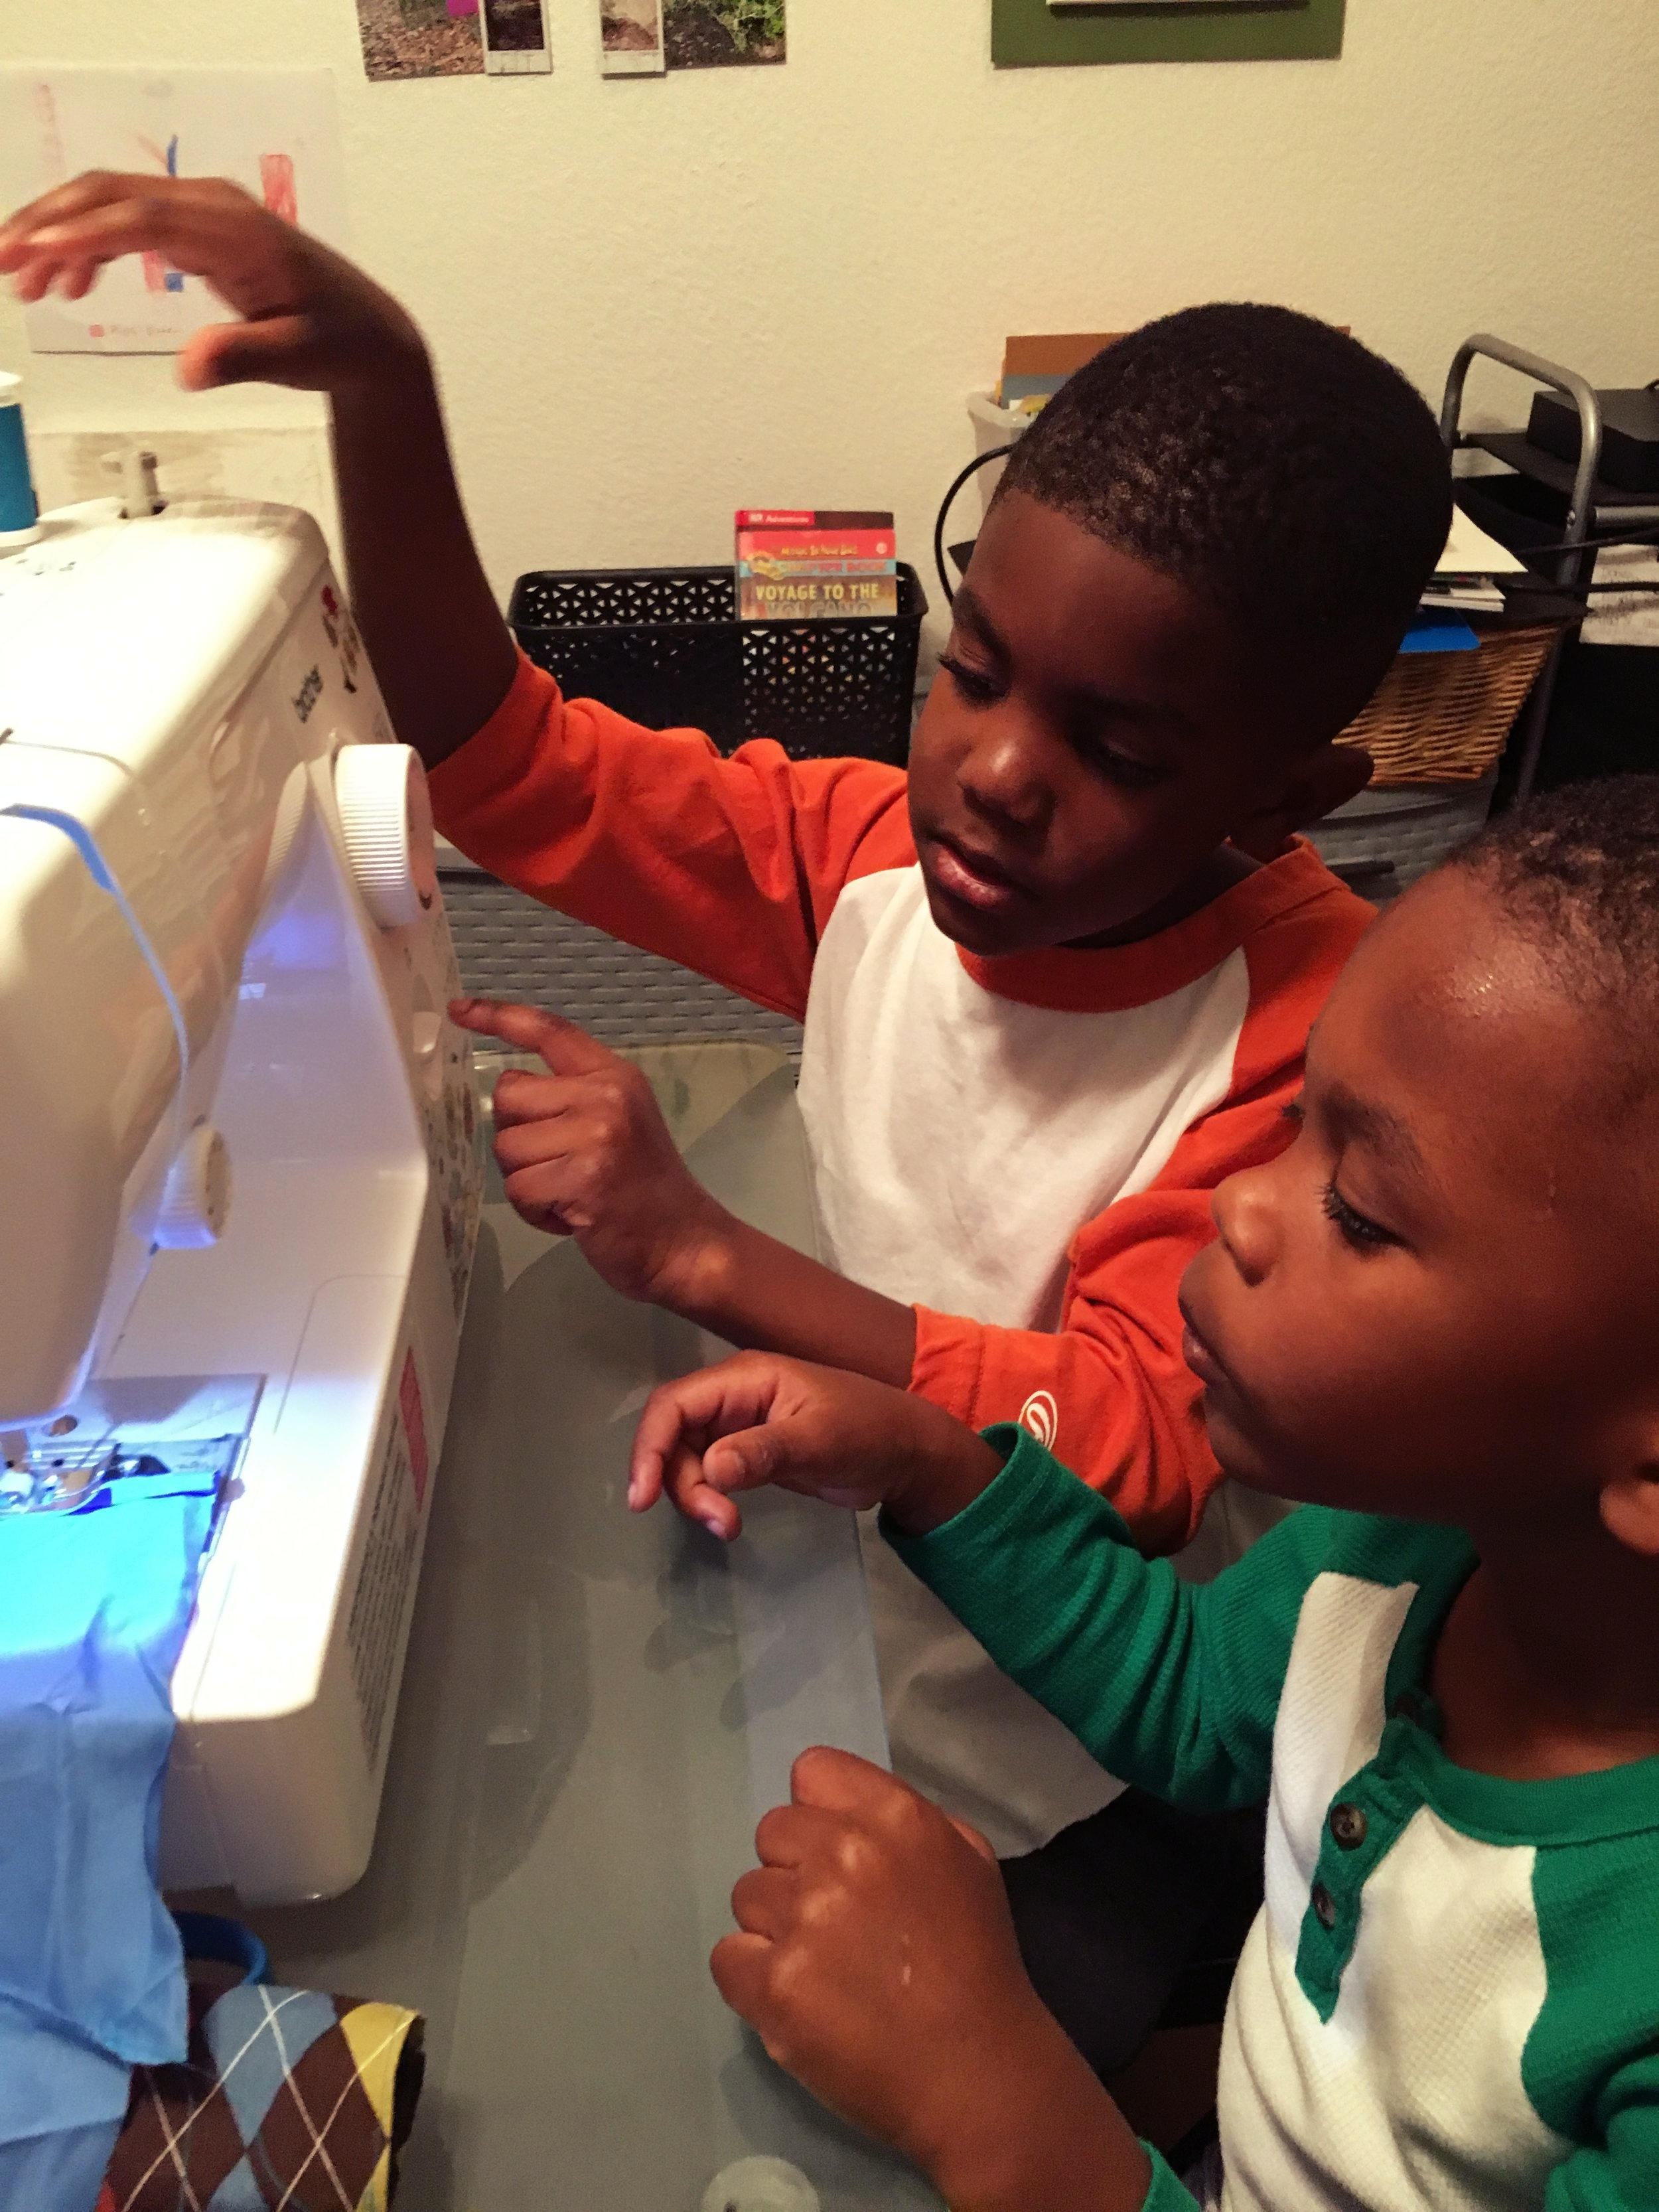 They loved trying to figure out the mechanics of the sewing machine!Too bad I didn't have a big sewing project going on at at the time!